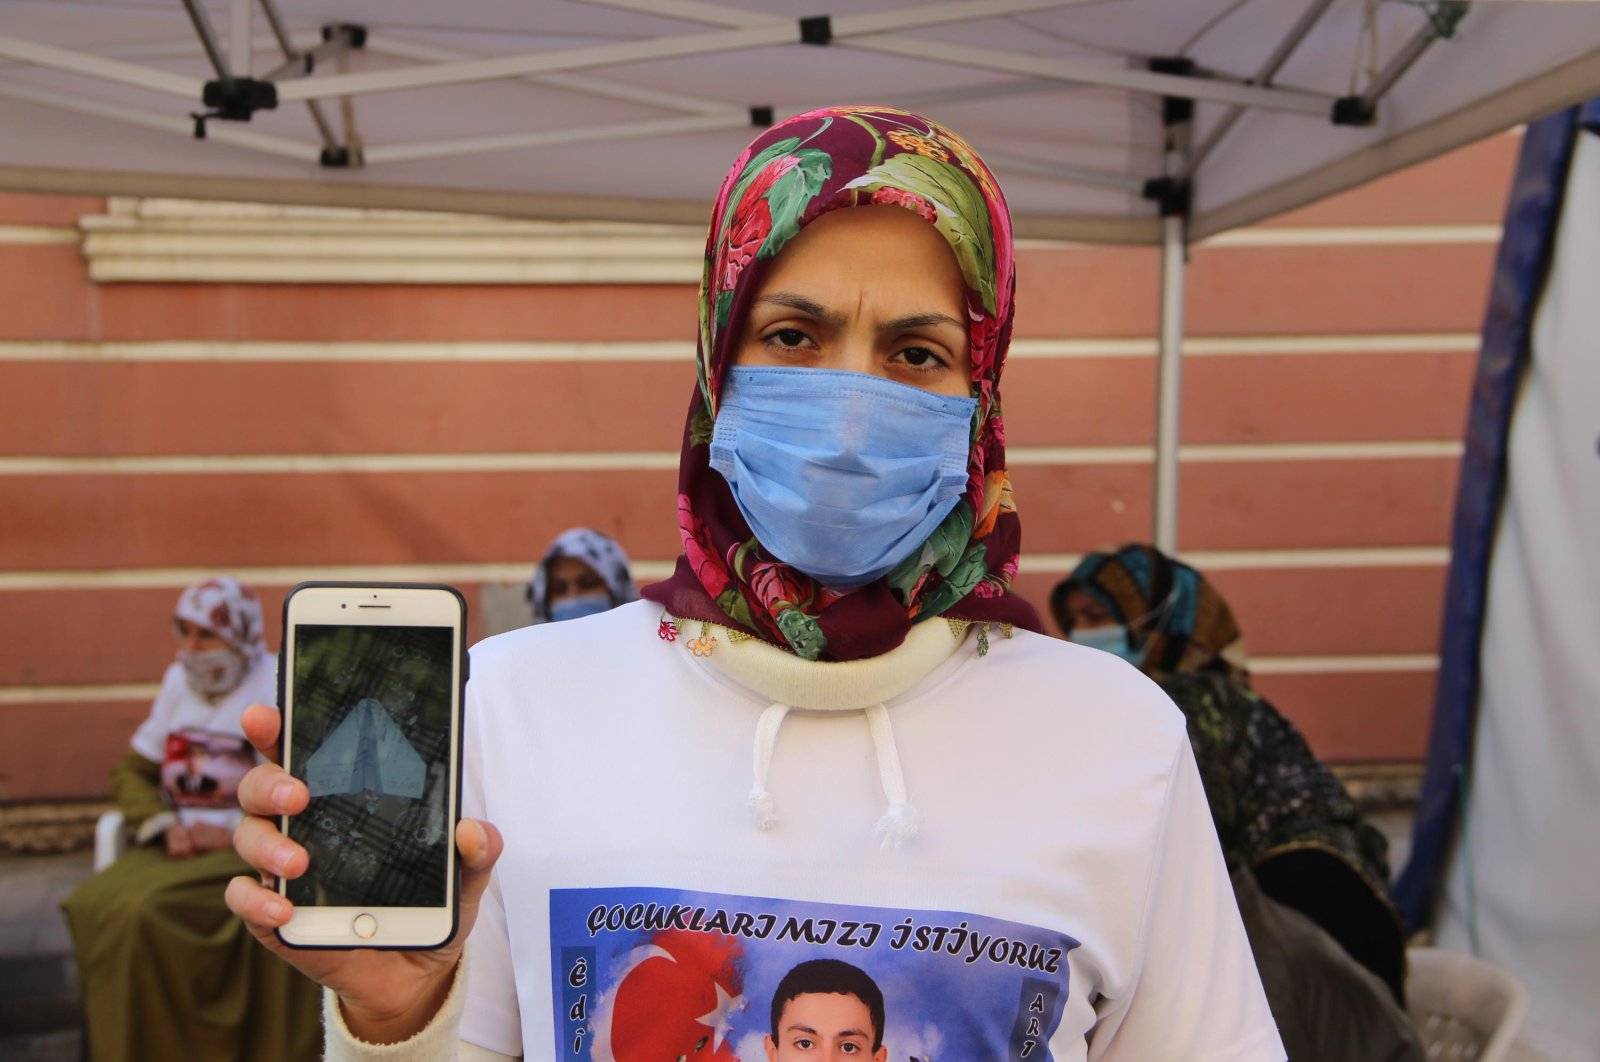 Ayşegül Biçer shows the picture of the death threat sent to her home by the PKK terrorists on her phone while wearing a t-shirt with a picture of her abducted child, Mustafa, Diyarbakır, Turkey, Nov. 17, 2020. (DHA)